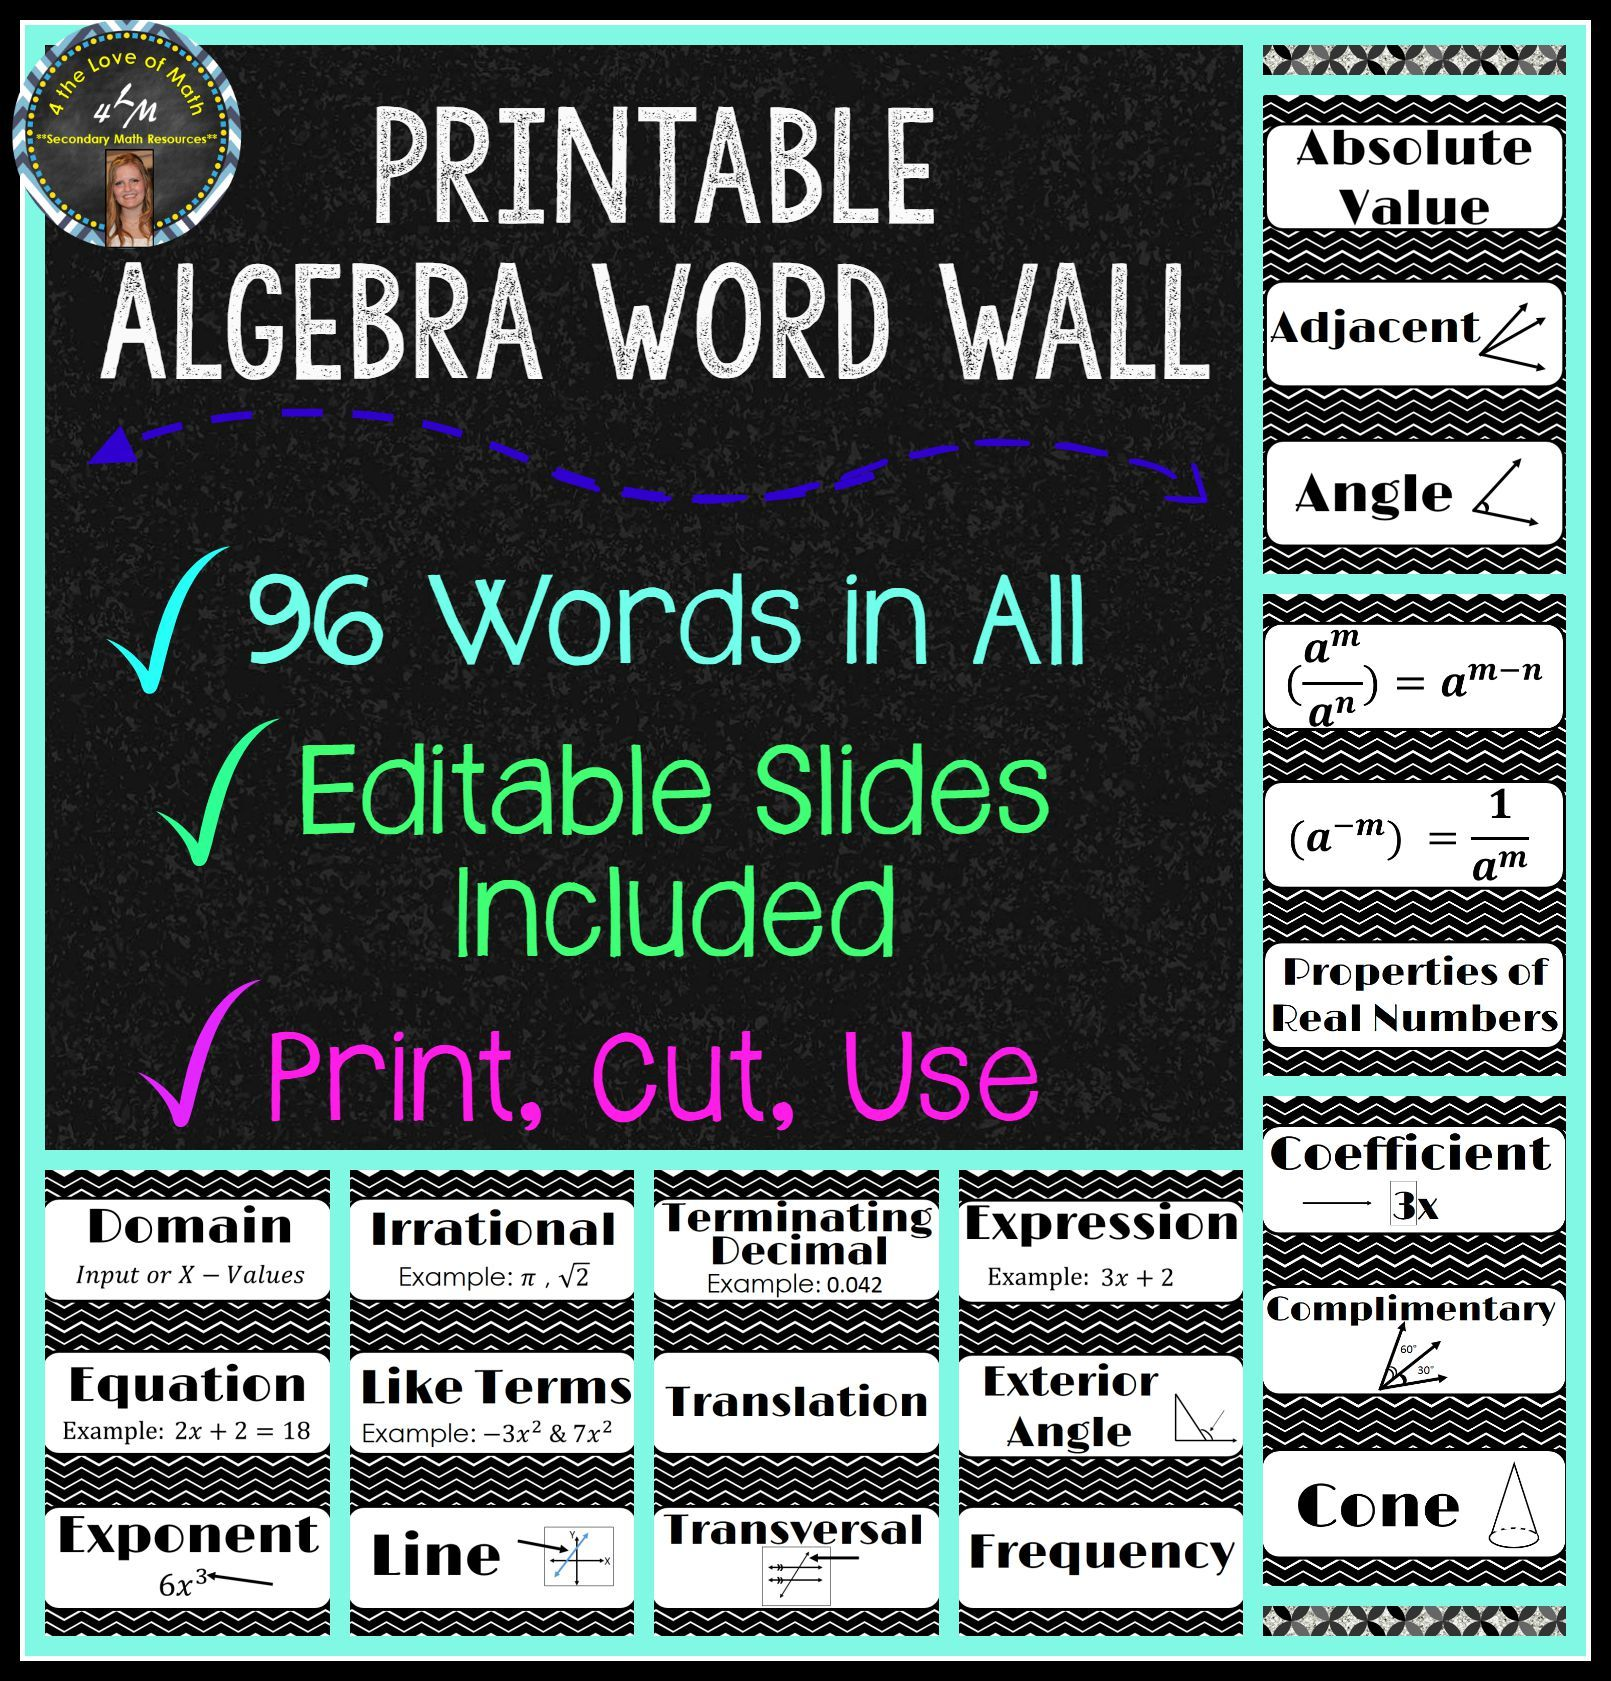 Algebra Word Wall Strips 96 In All